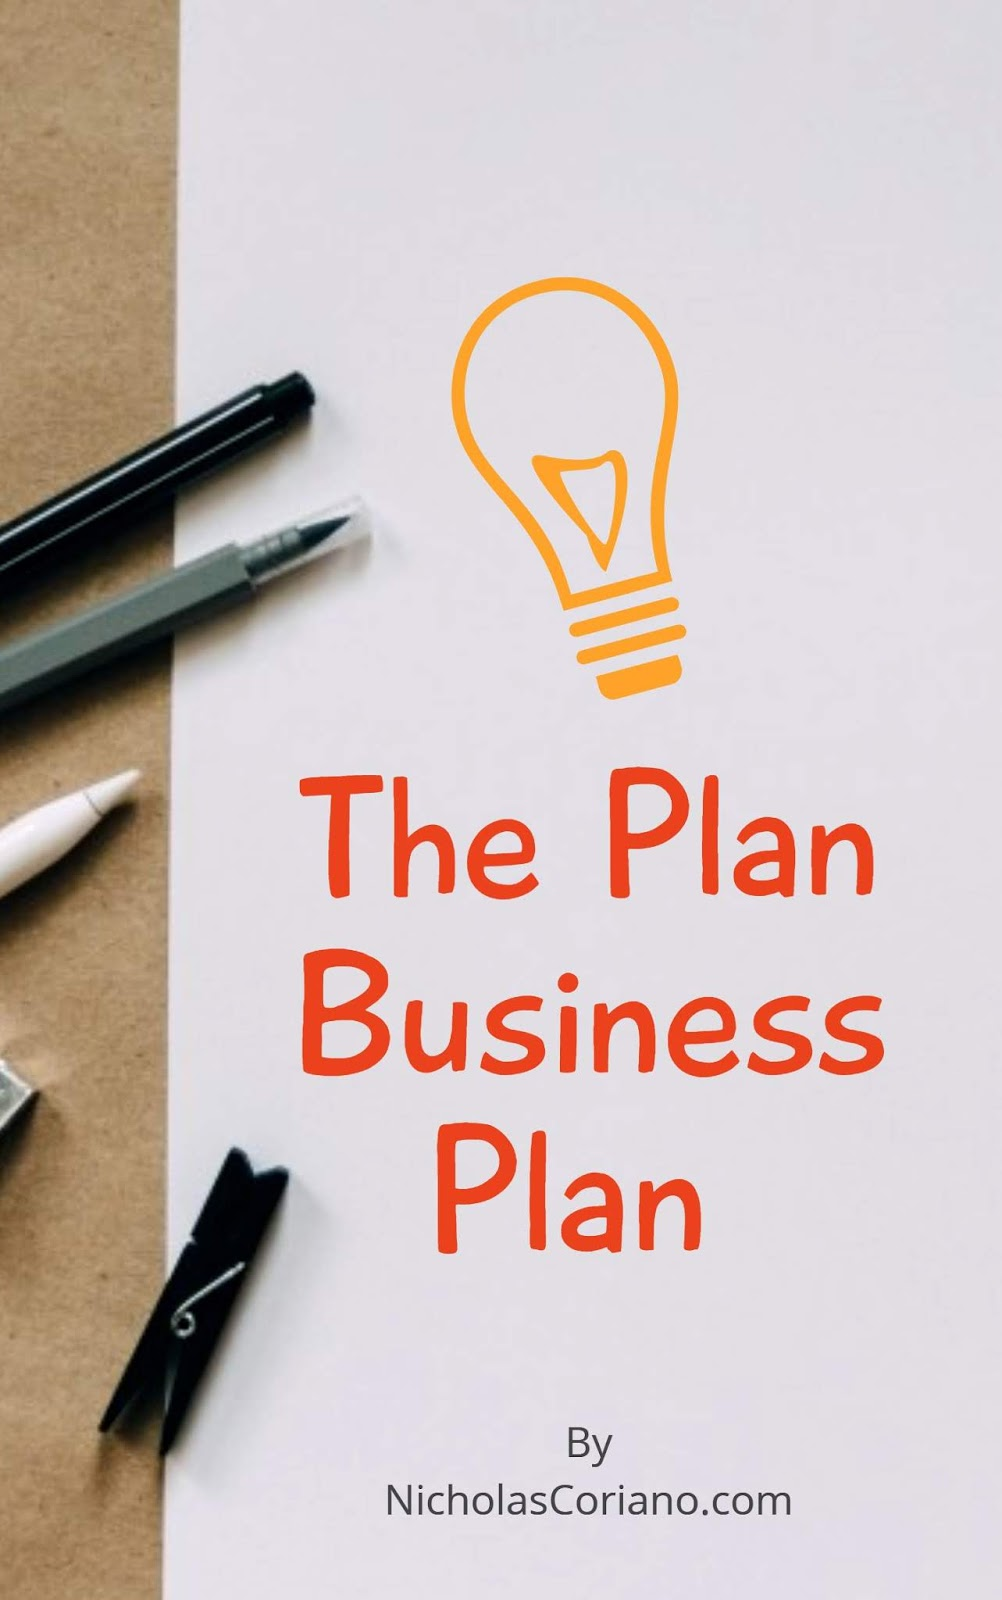 nicholas g coriano standard business plans